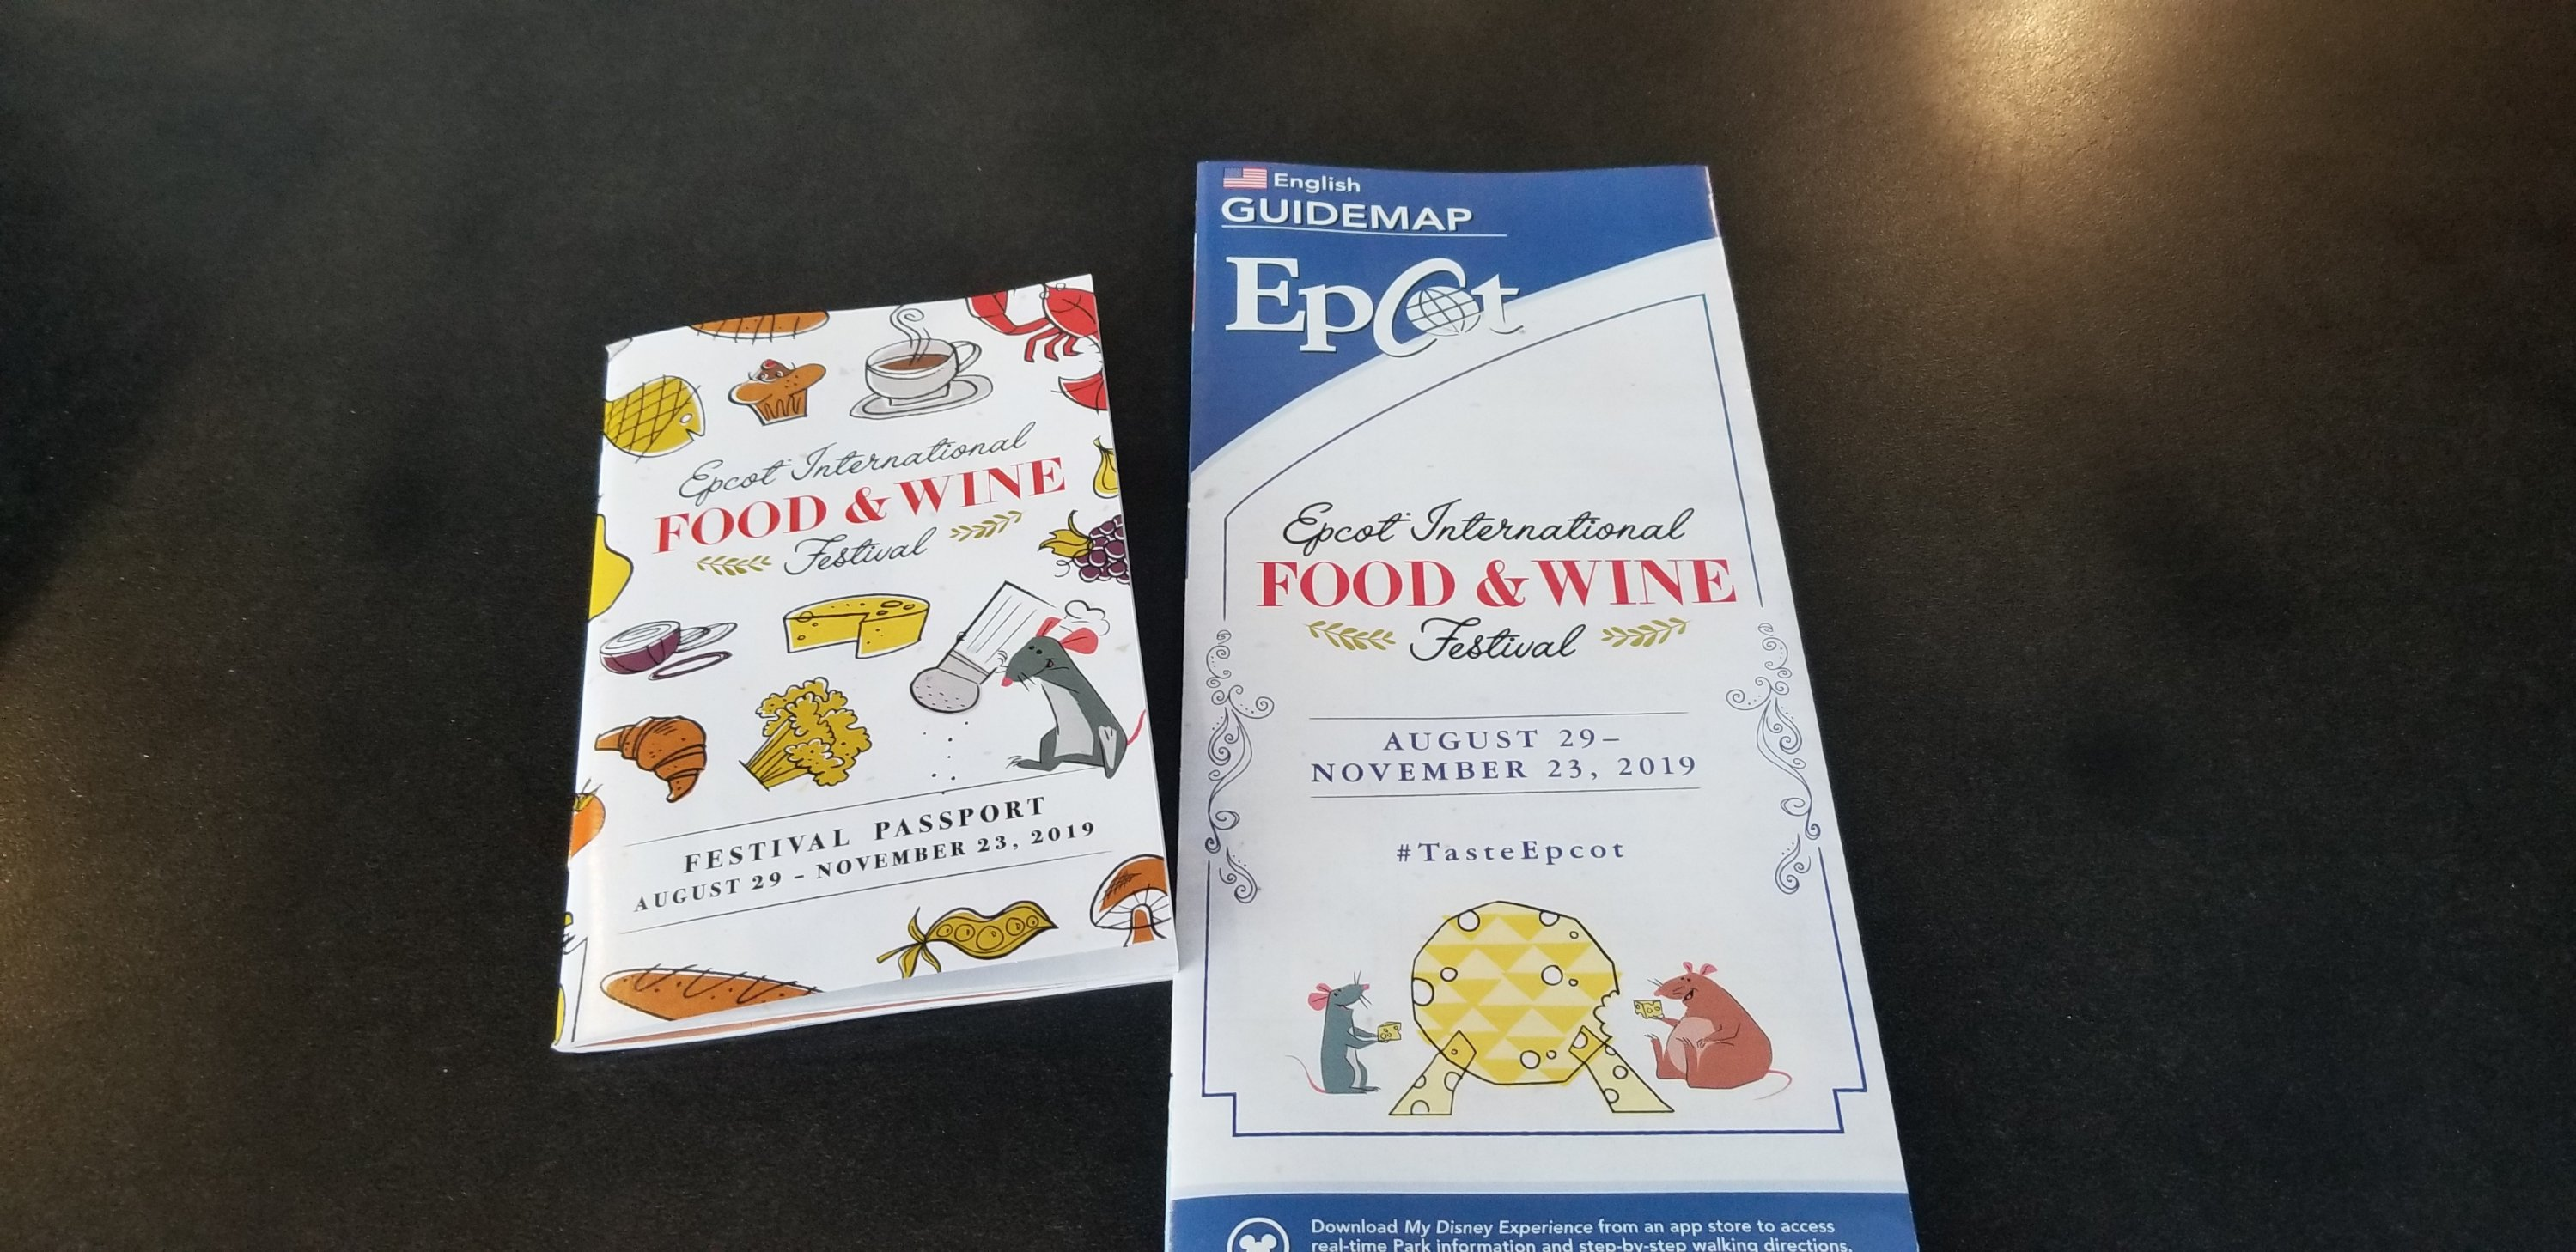 2016 EPCOT Food and Wine Festival Guide Map /& Passport Disney